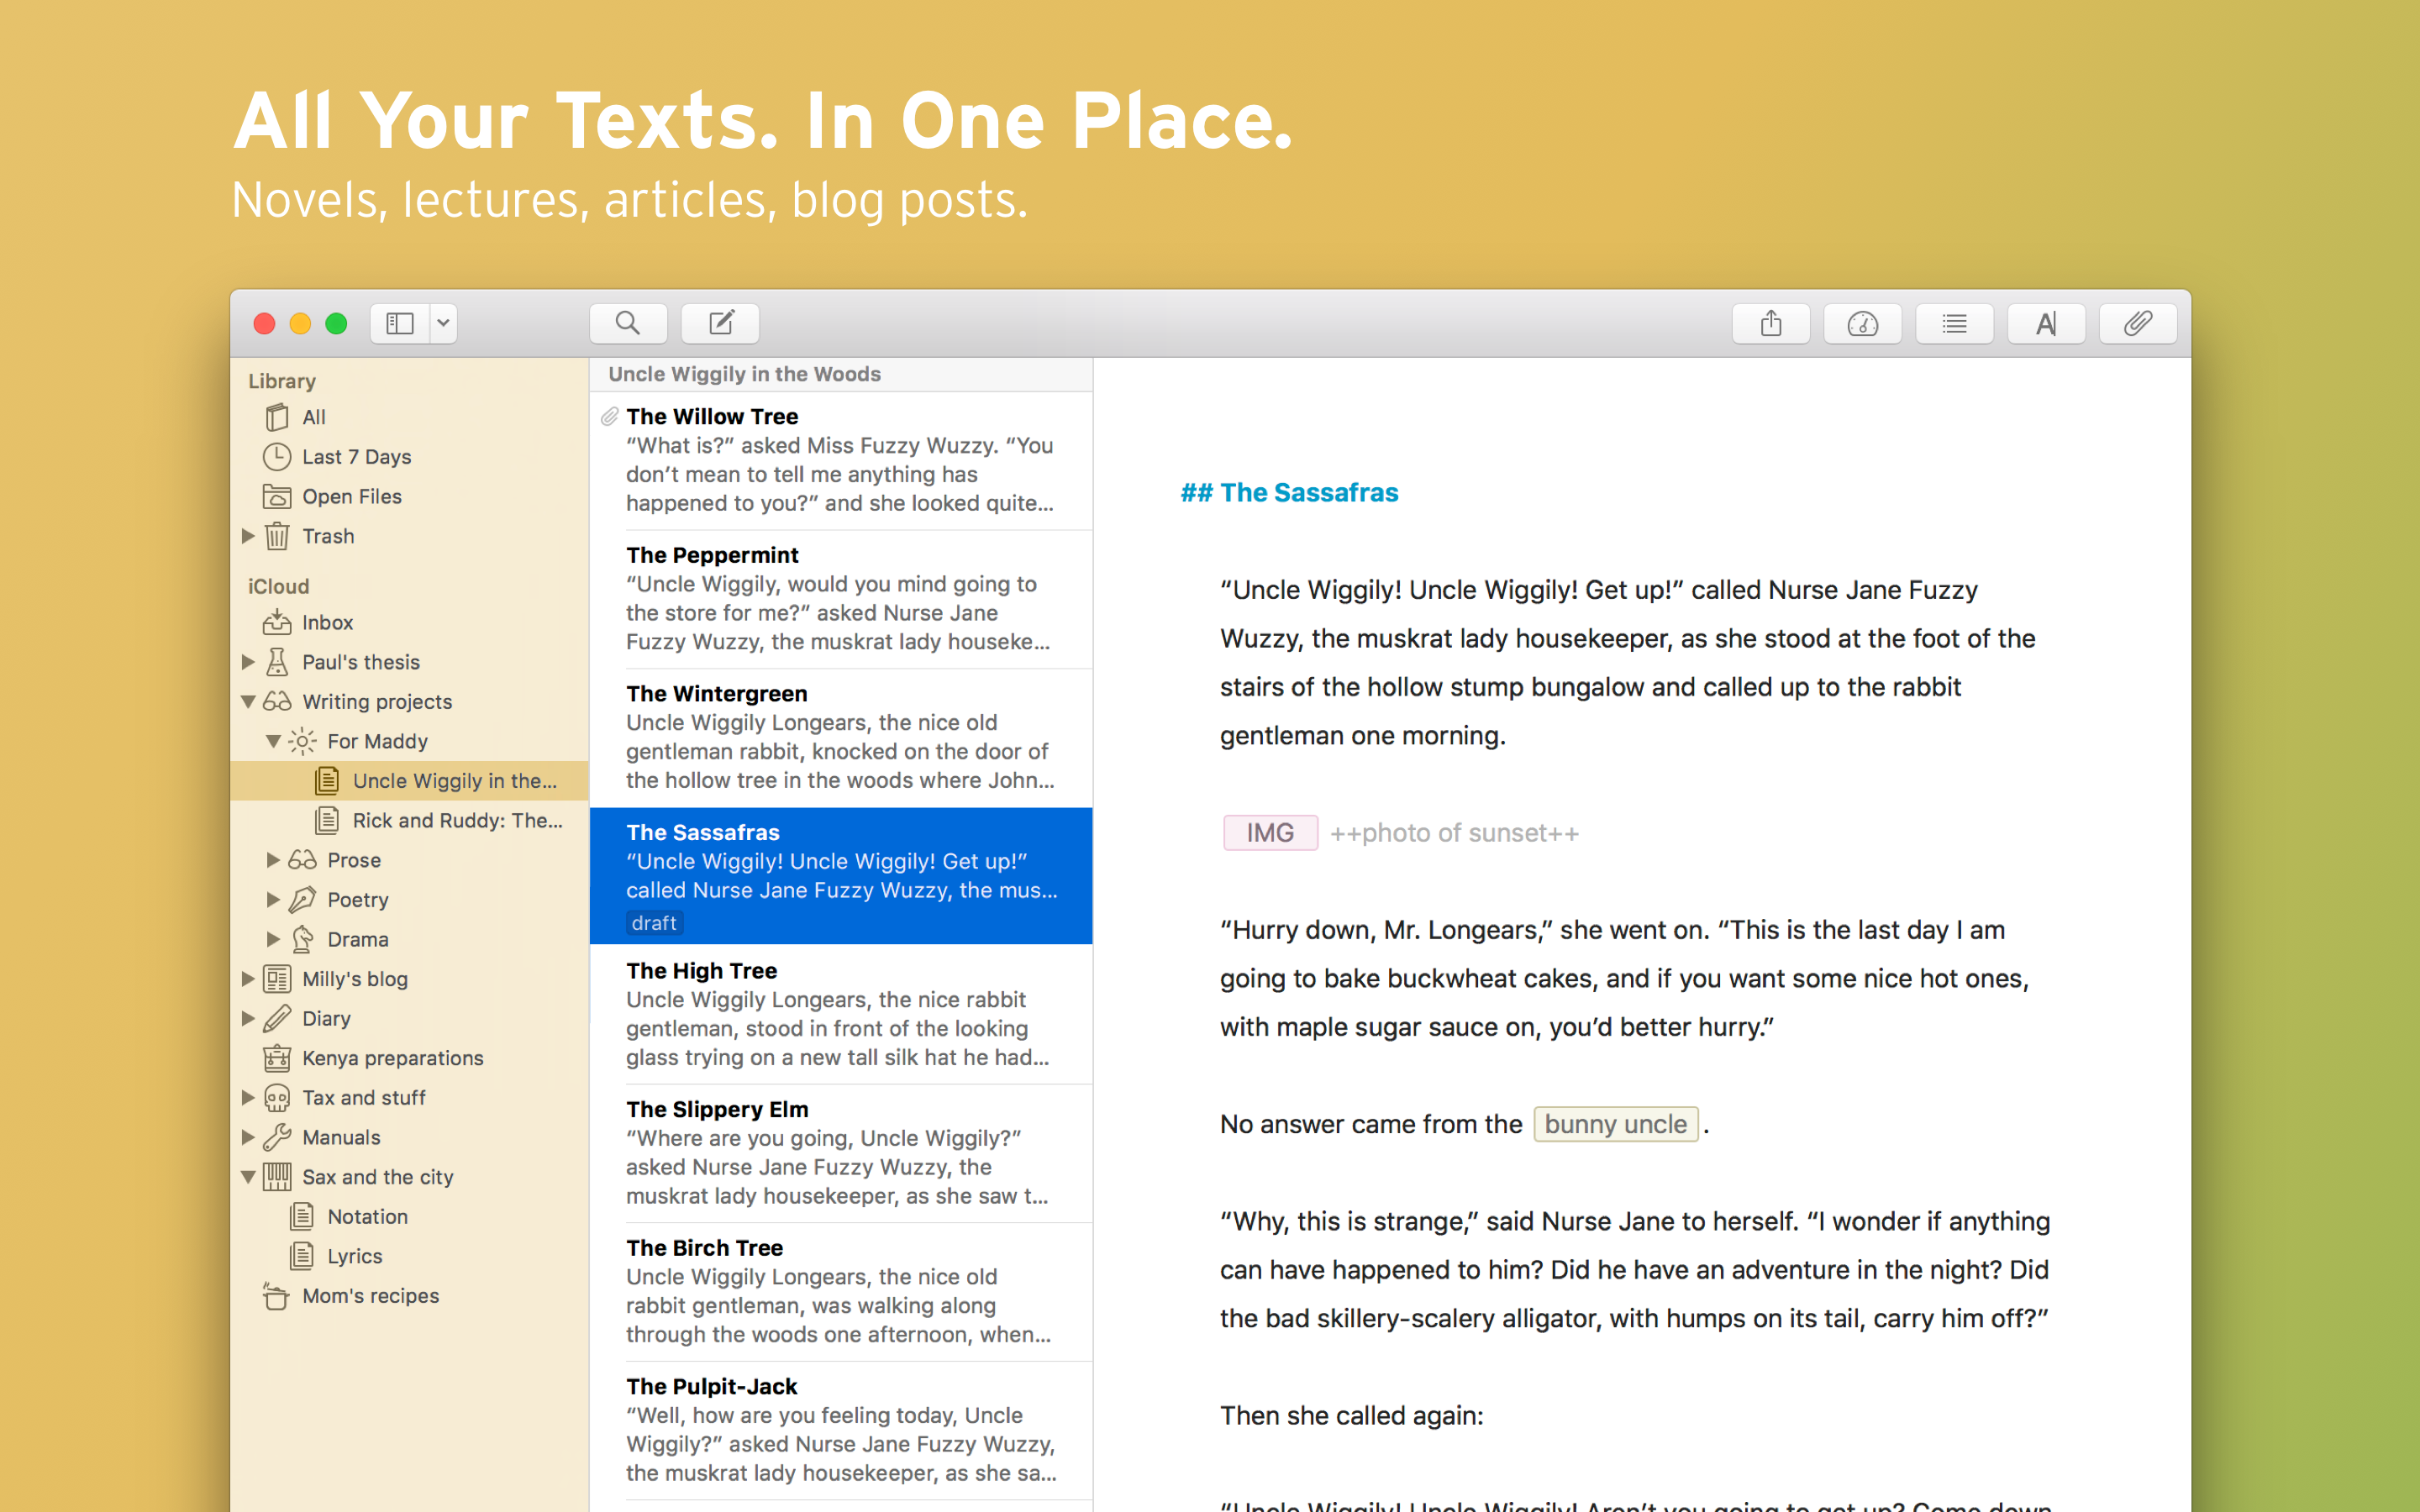 All your texts in one place - Ulysses Library